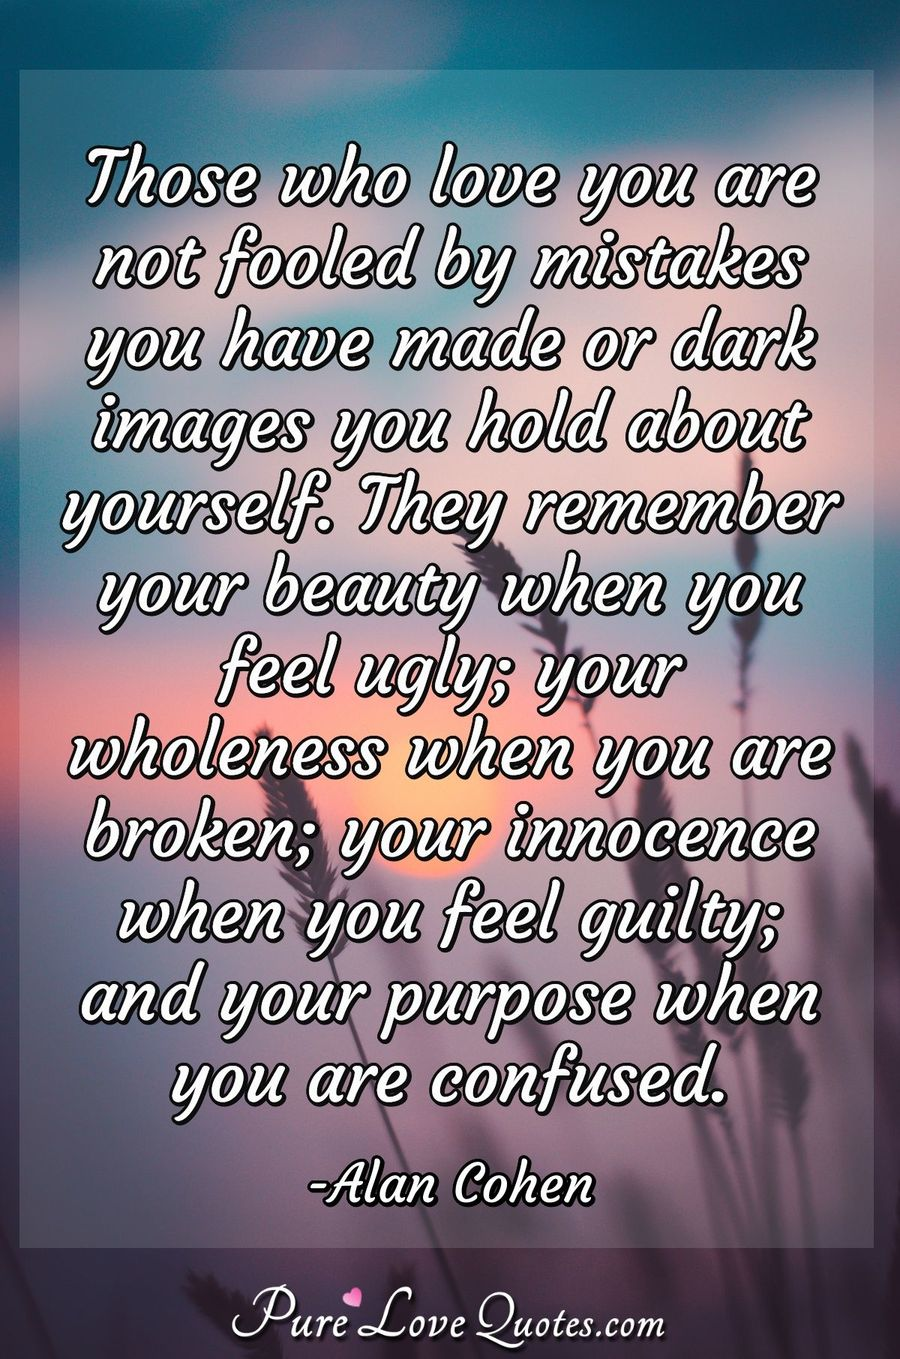 Those who love you are not fooled by mistakes you have made or dark images you hold about yourself. They remember your beauty when you feel ugly; your wholeness when you are broken; your innocence when you feel guilty; and your purpose when you are confused. - Alan Cohen